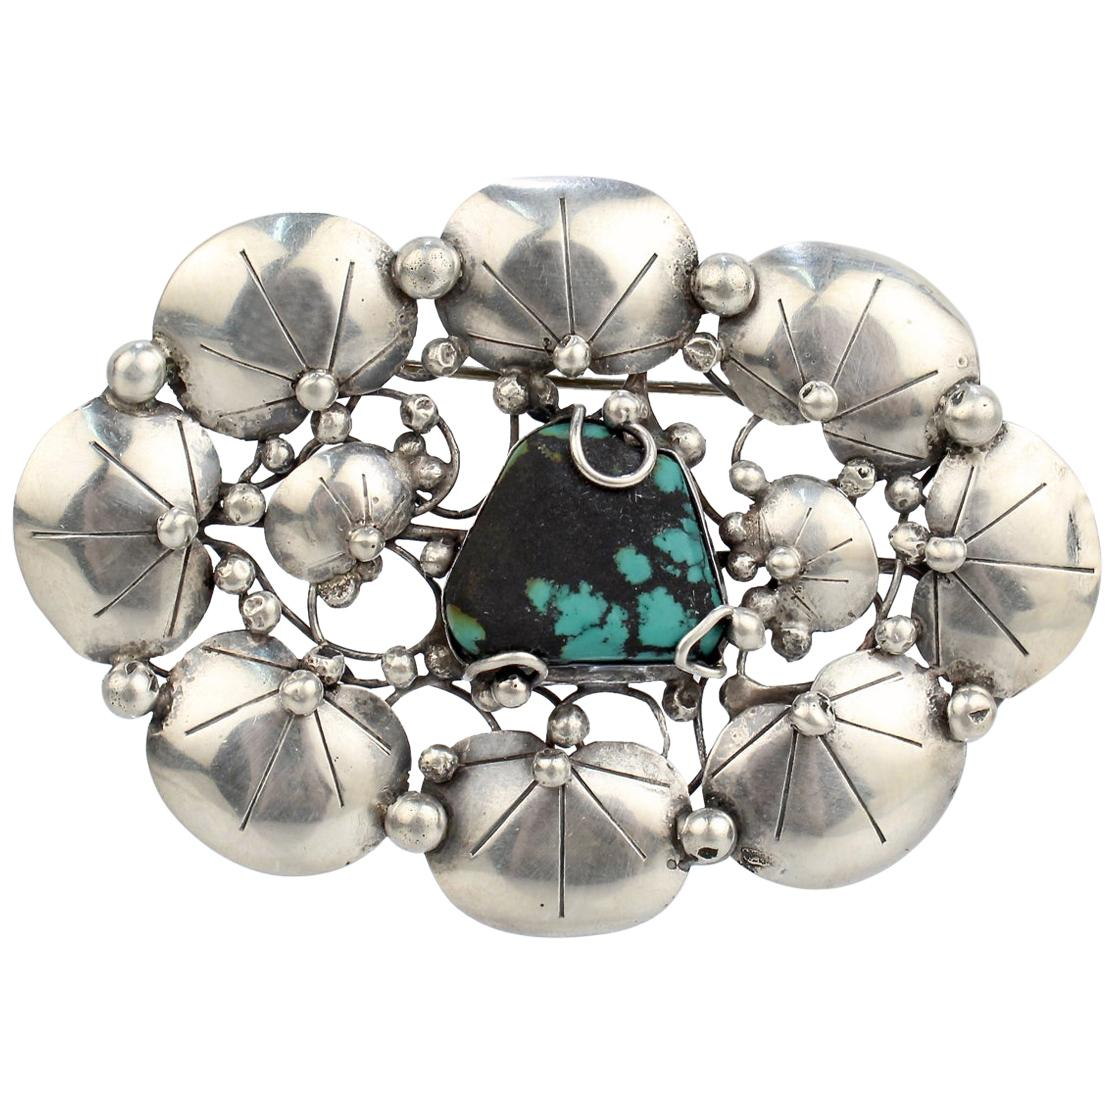 Mary Gage American Arts & Crafts Sterling Silver & Turquoise Lily Pad Brooch Pin